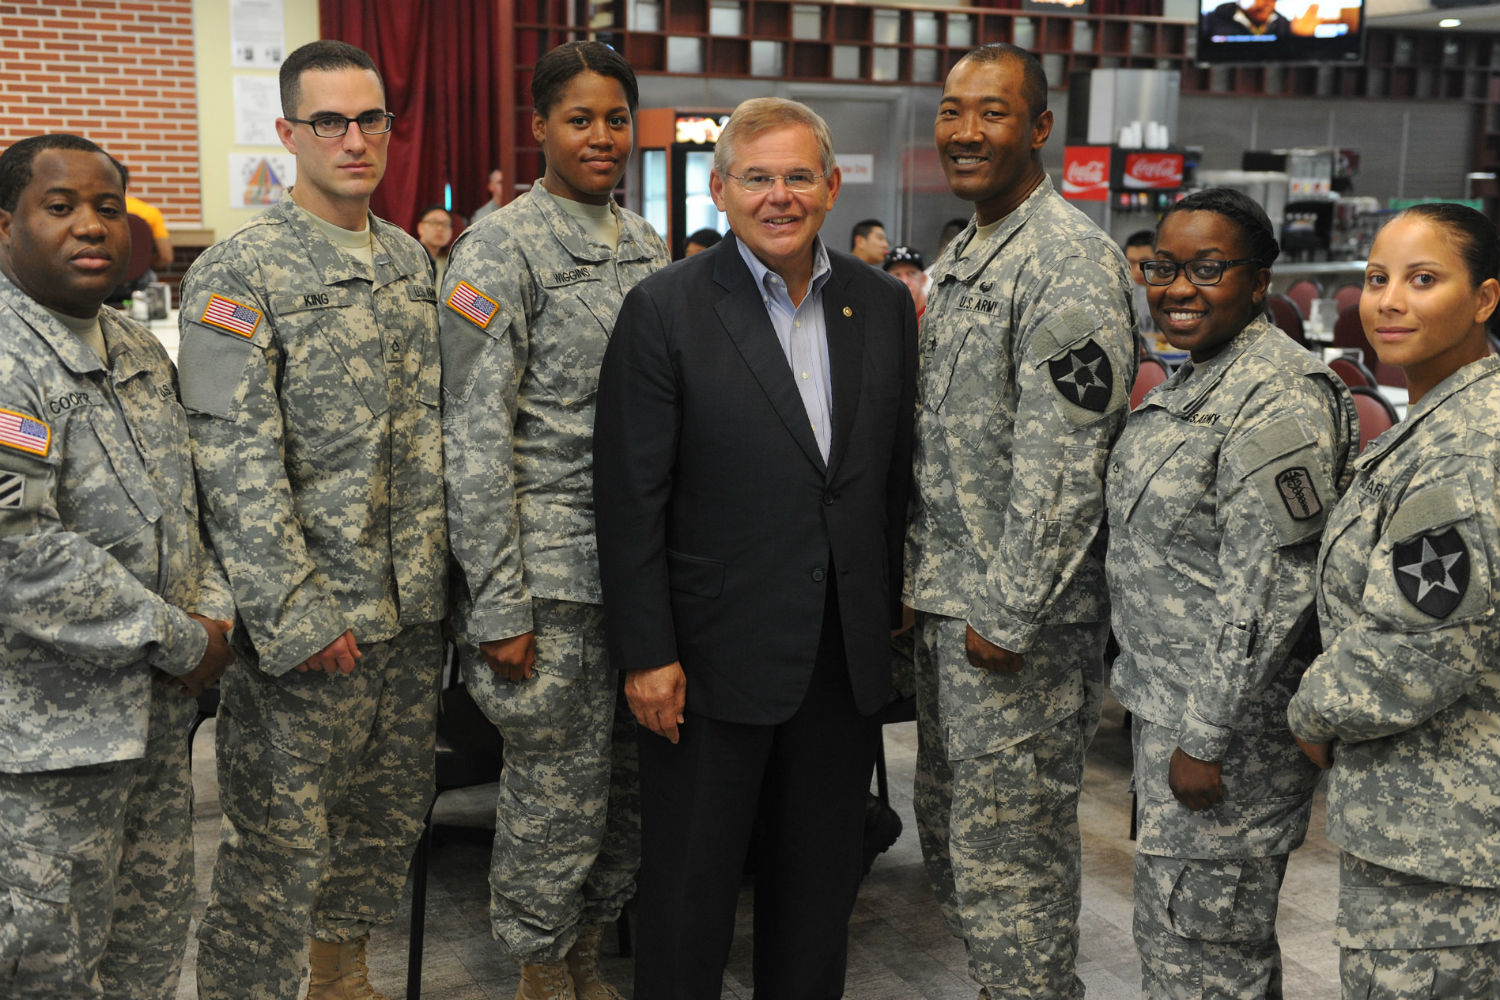 Menendez-and-soldiers-2013-15x10